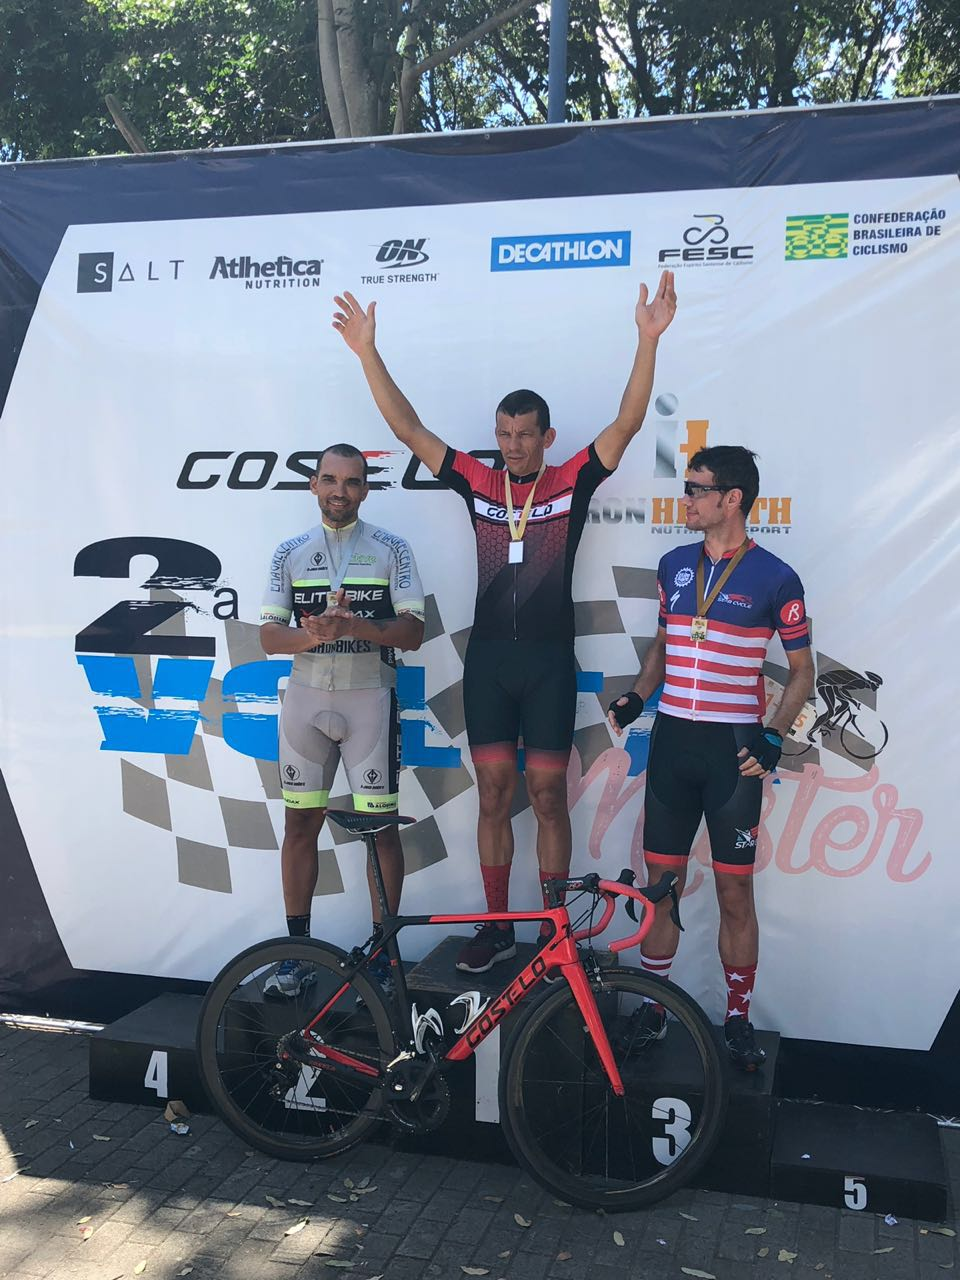 Costelo BRC Team Brazil UCI Approved Cyclist Brazil Cycling Team Racing Results And Cycle Show